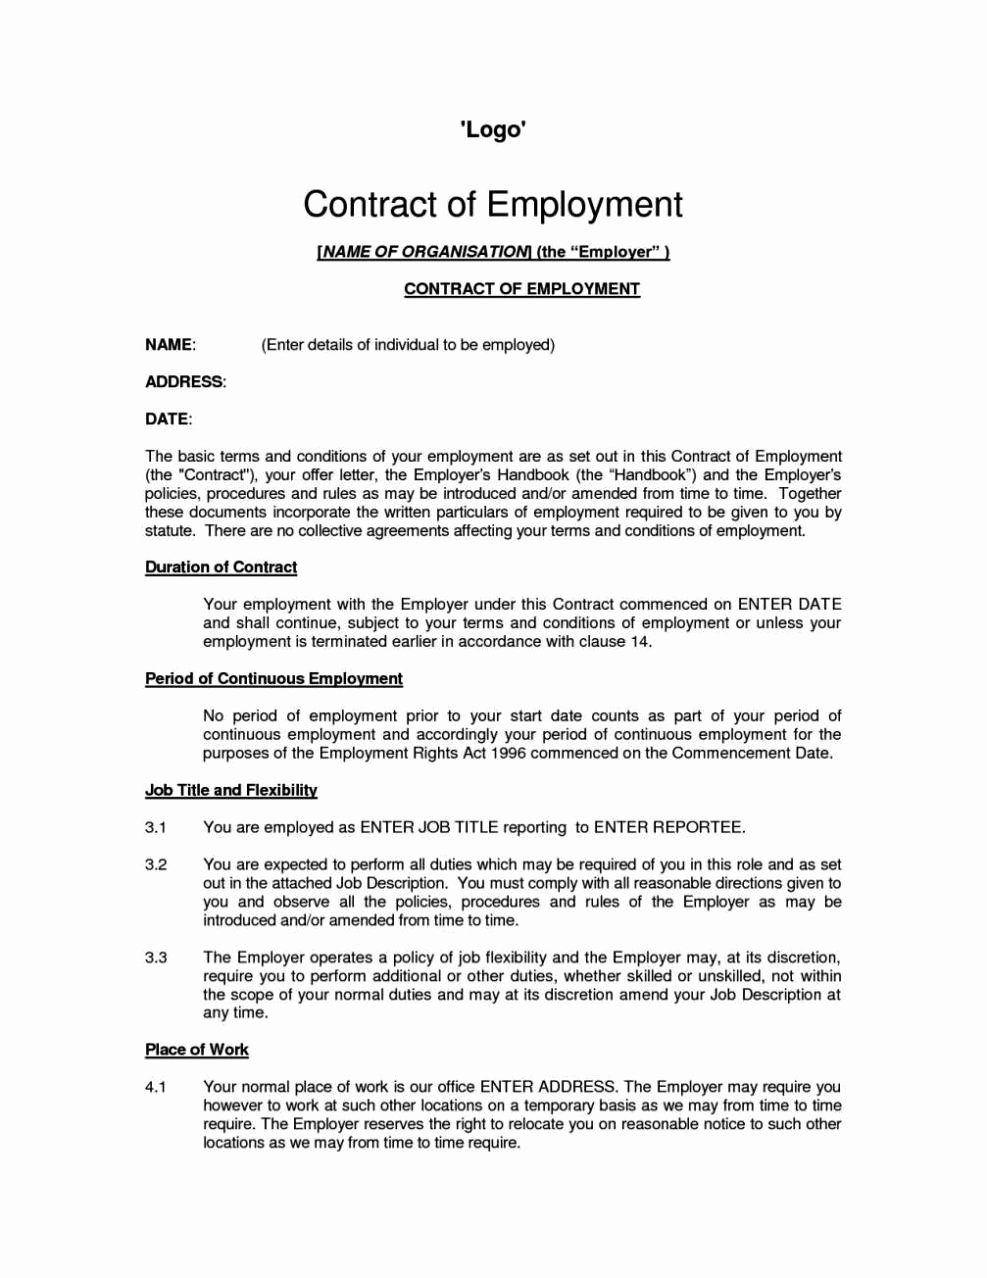 Standard Employment Contract Template Sampletemplatess